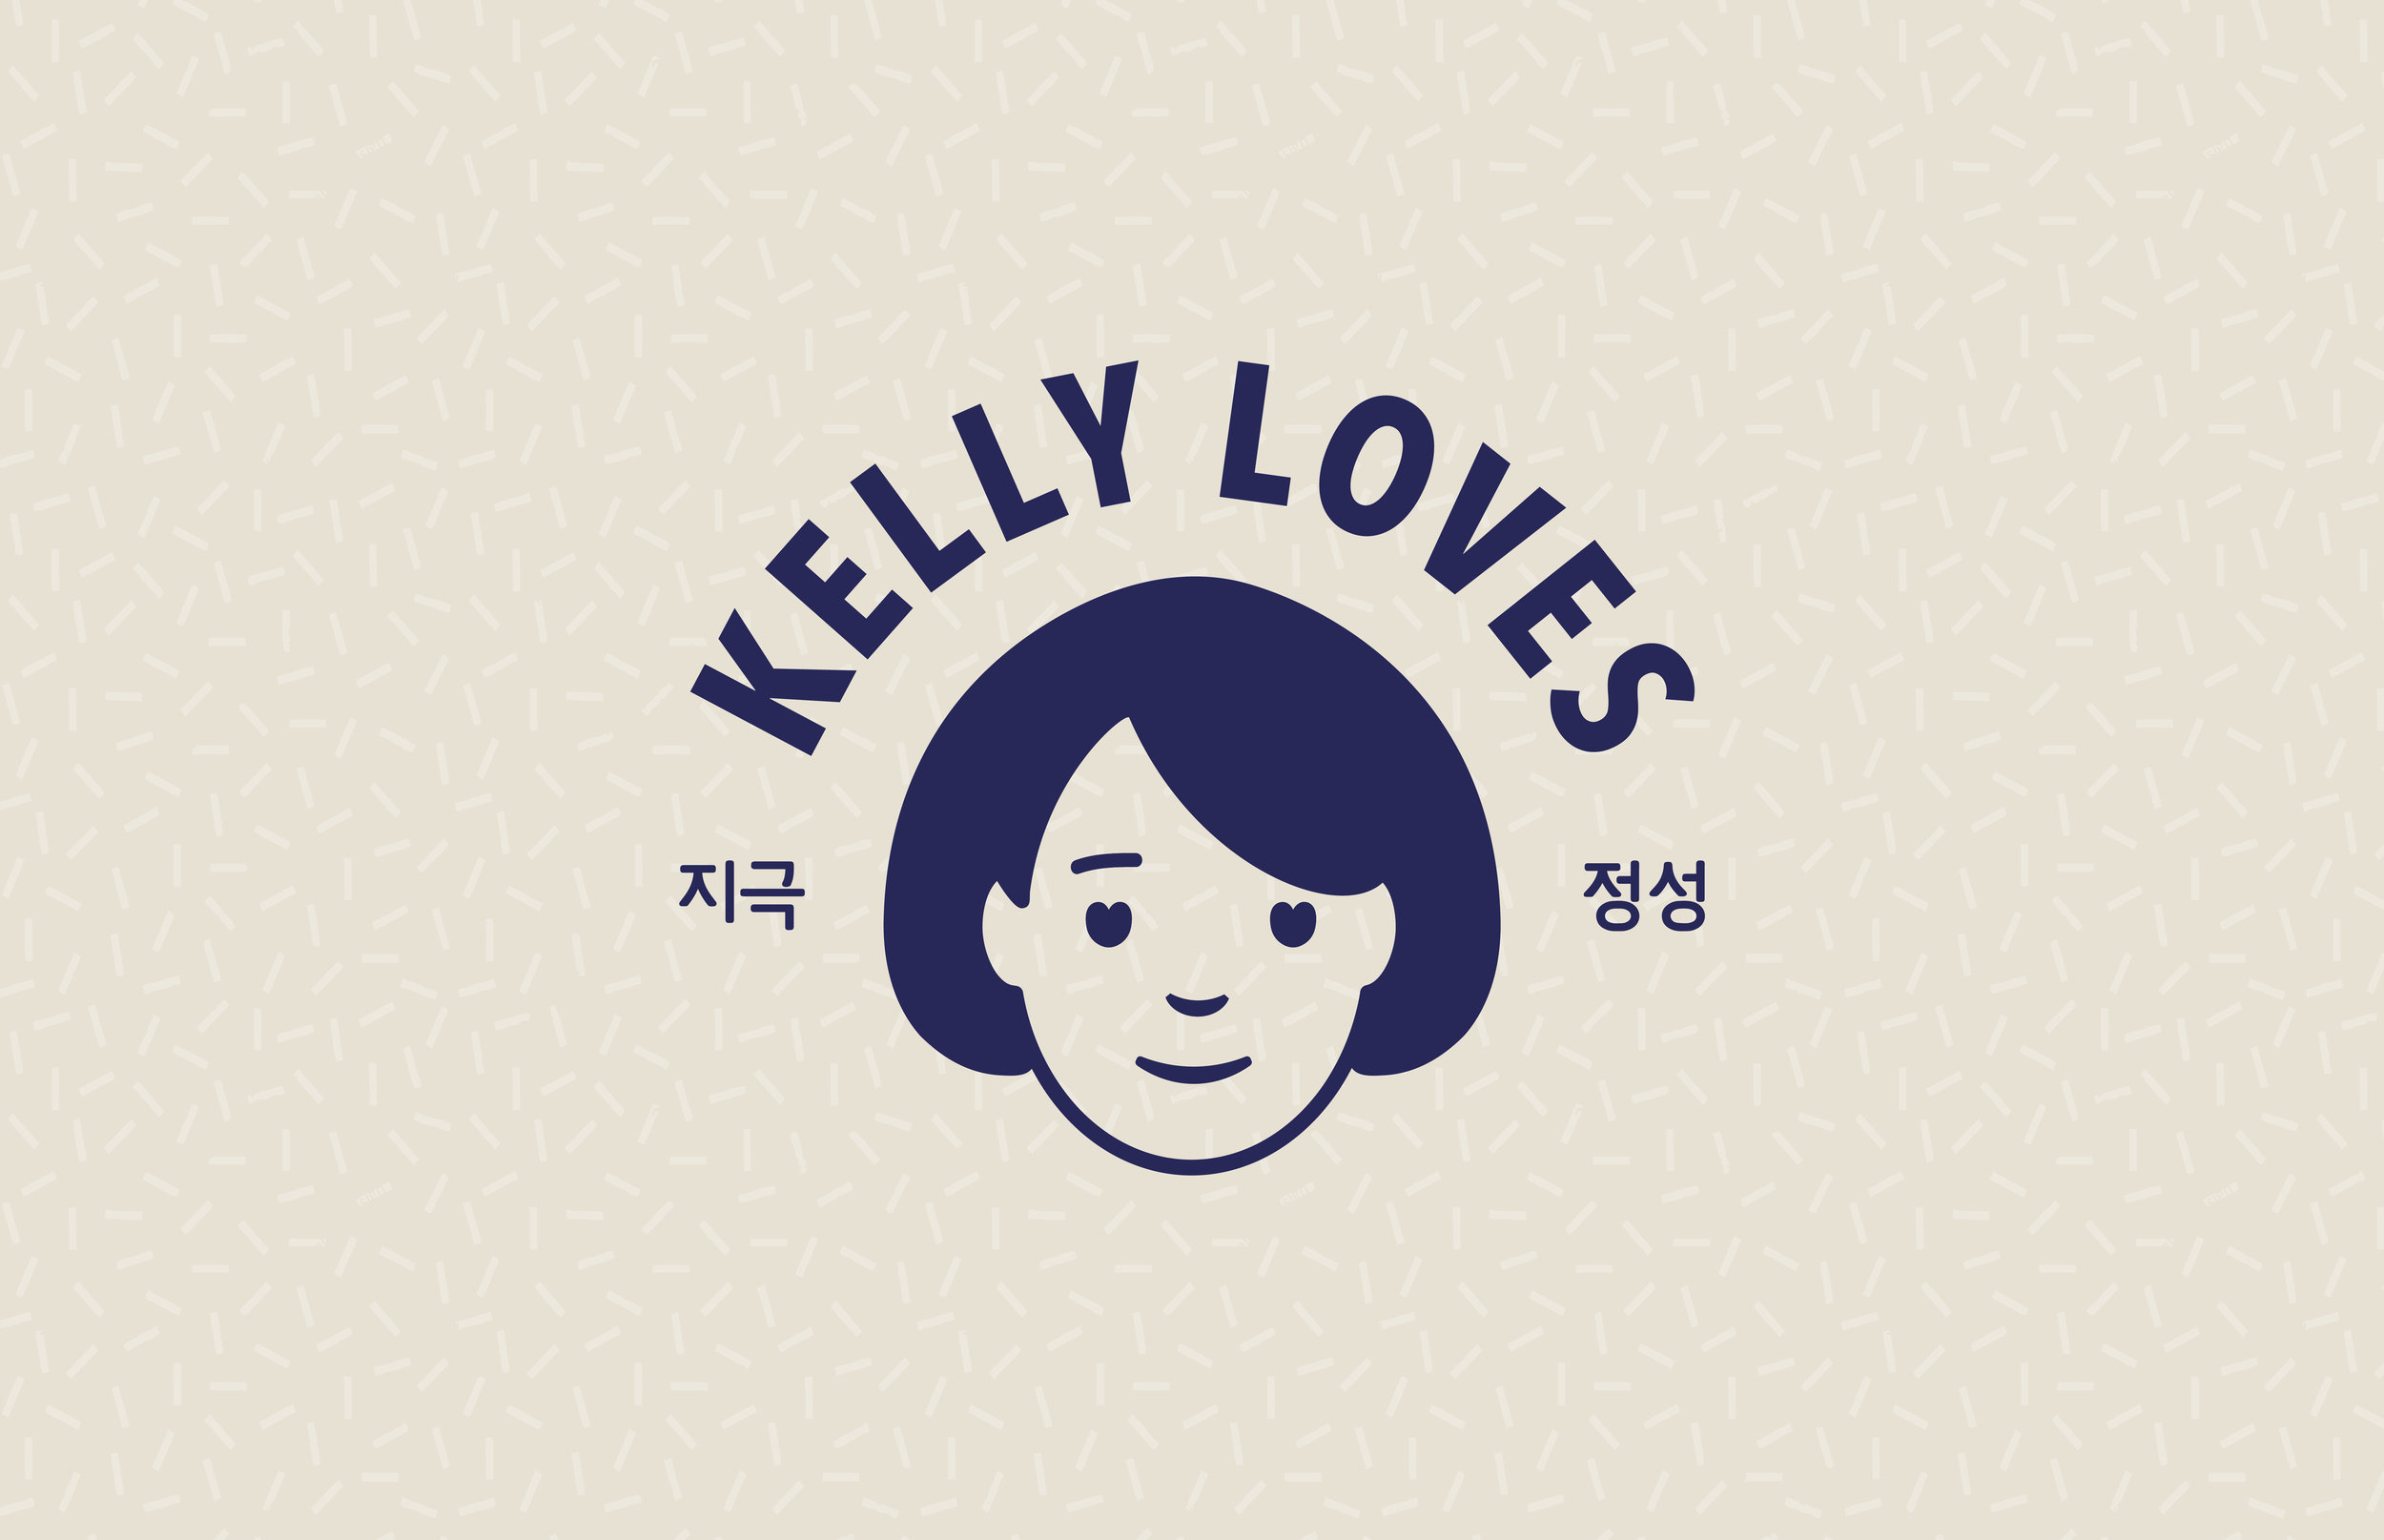 Without - Kelly Loves1.jpg